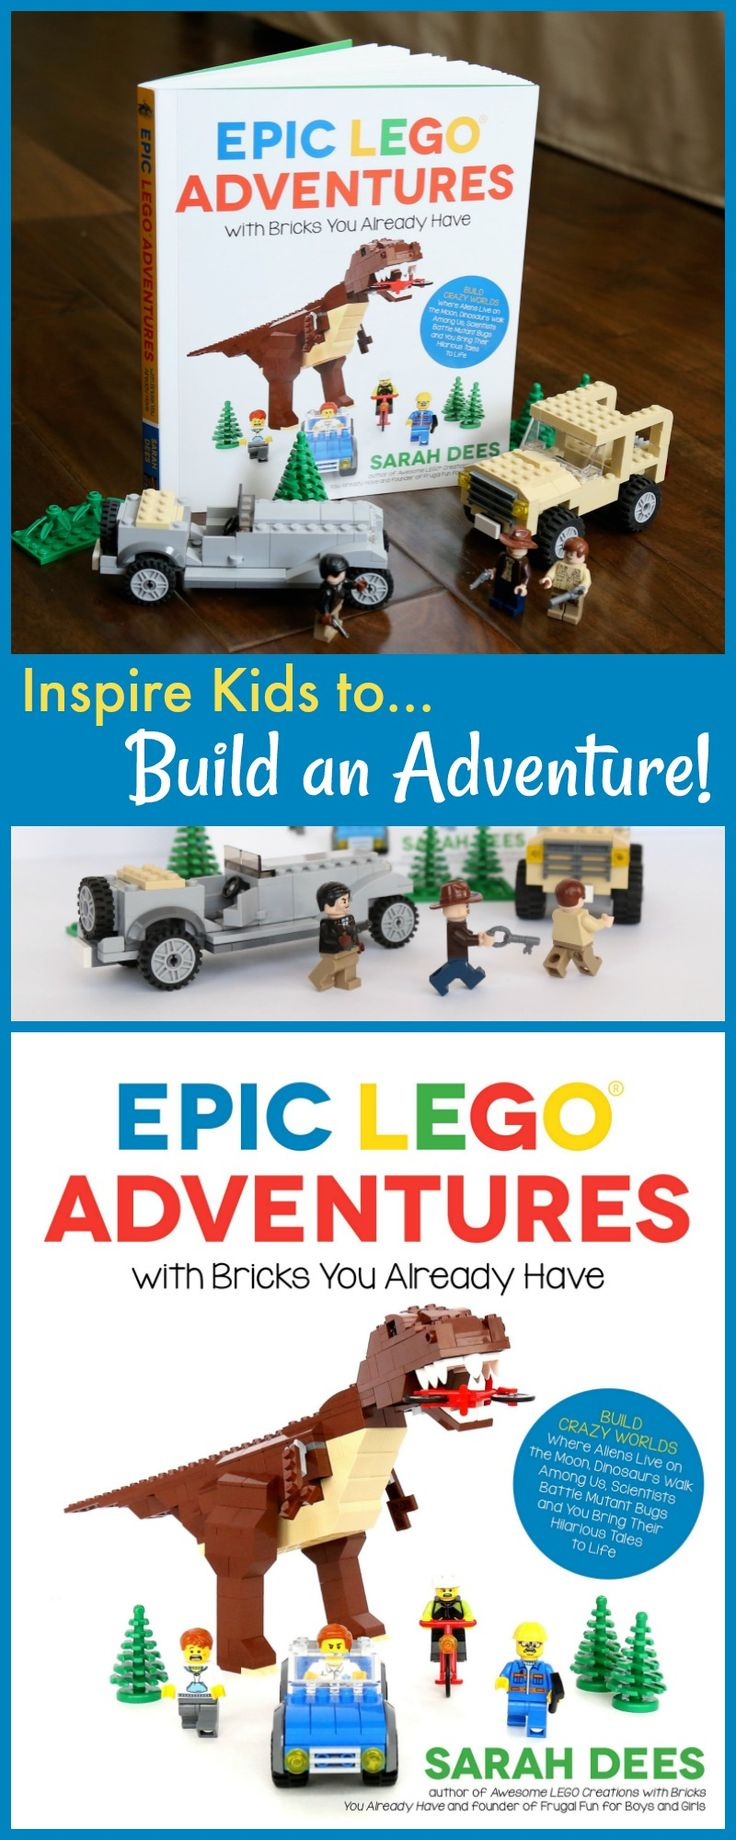 A look inside Epic LEGO Adventures with Bricks You Already Have - sample pages and more. This book challenges kids to build new projects with that big bucket of random bricks! Inspire creativity, building skills, and storytelling!